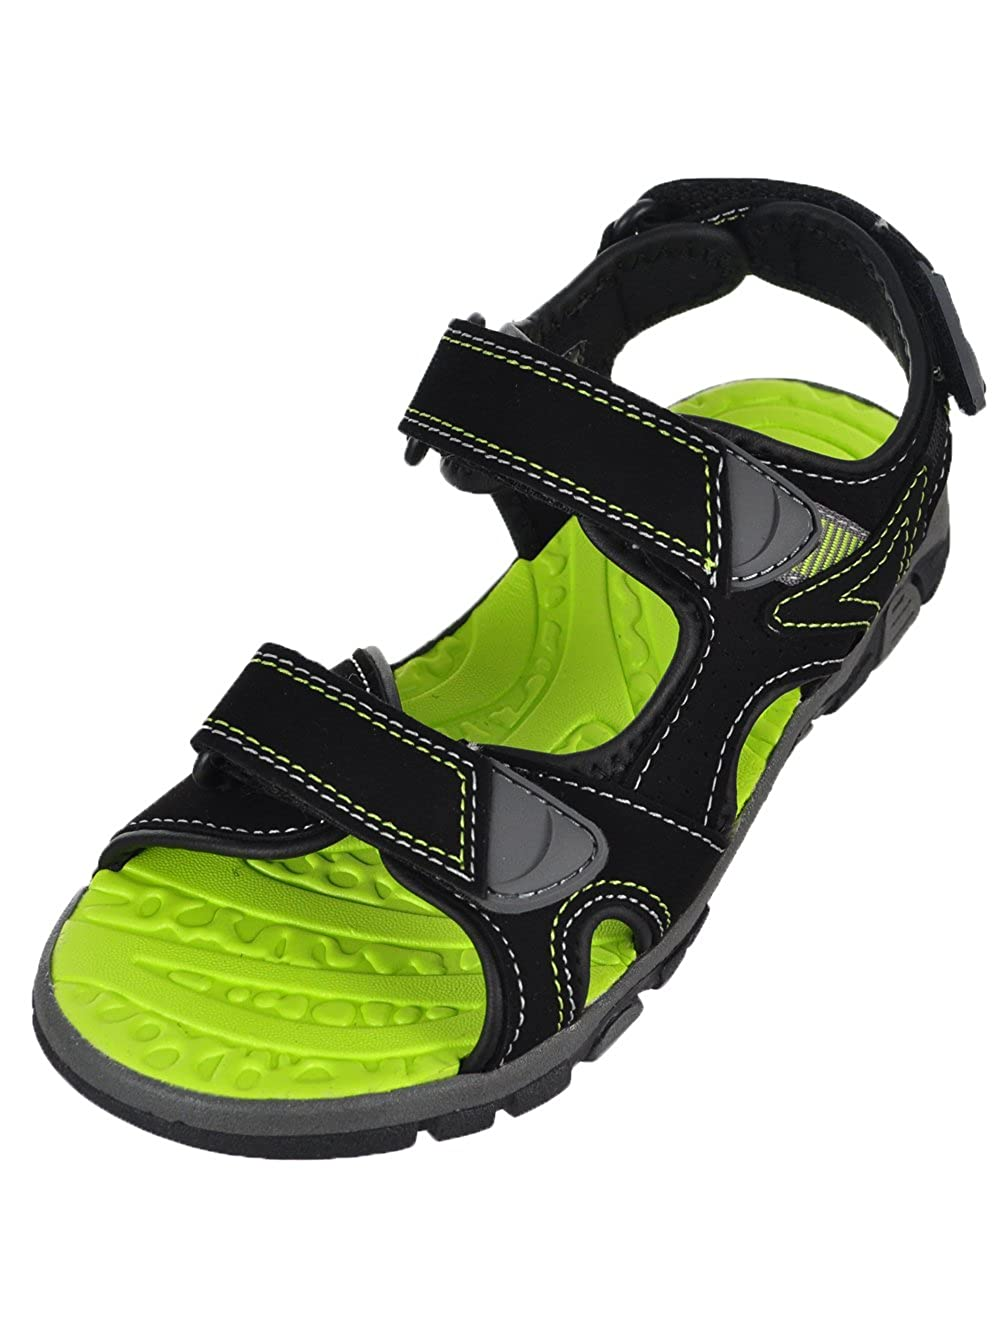 Khombu Boys' River Sandal Black/Neon Green